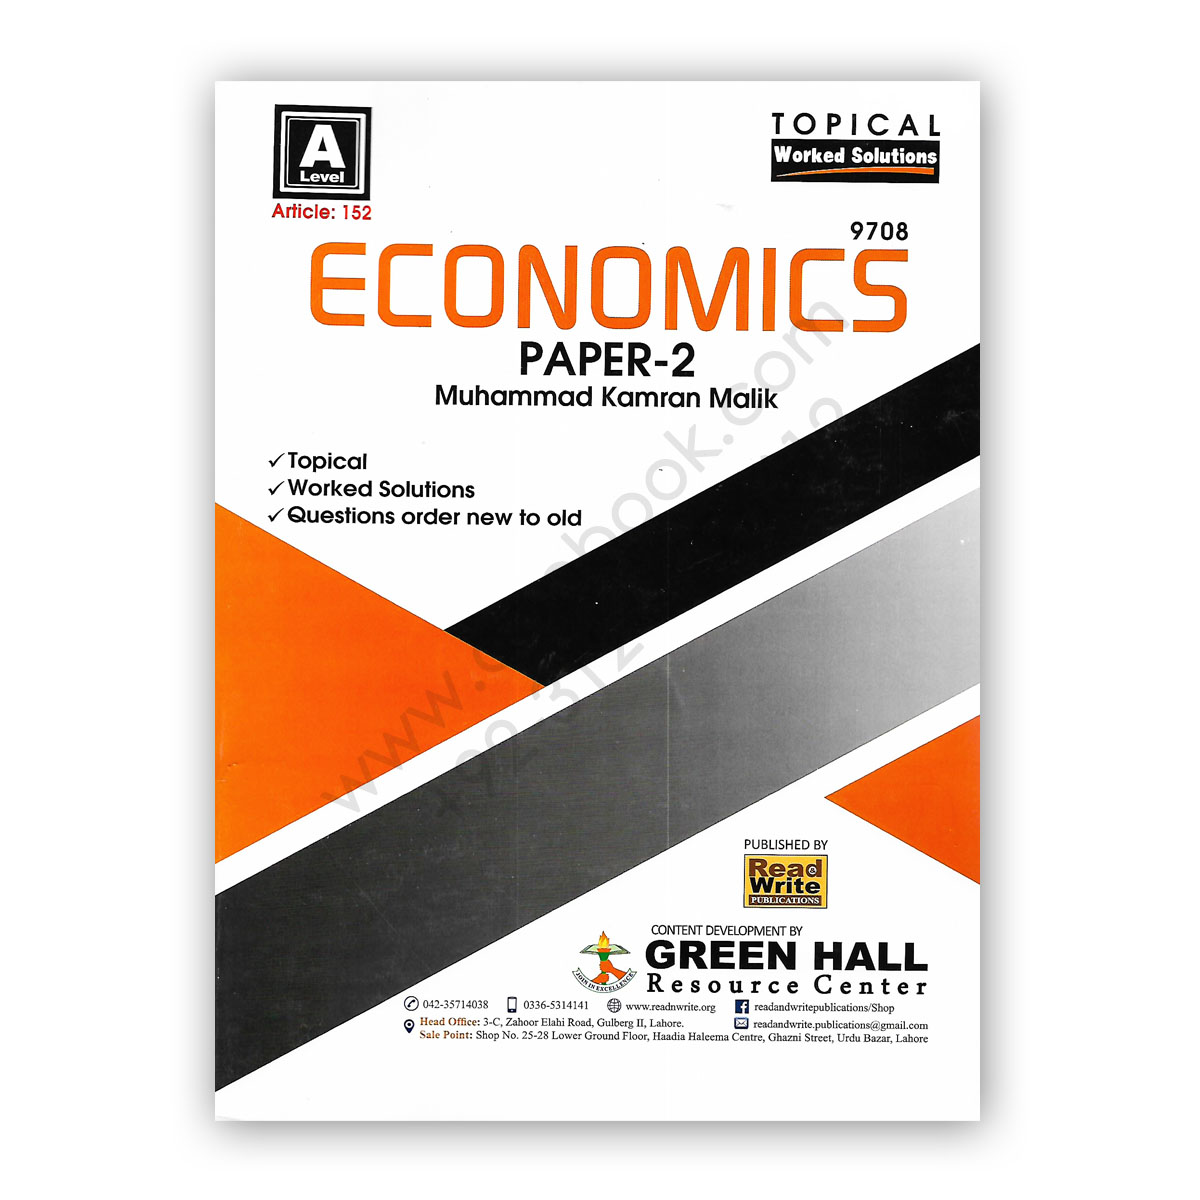 a level economics paper 2 topical solved (art#152) by m kamran malik - green hall